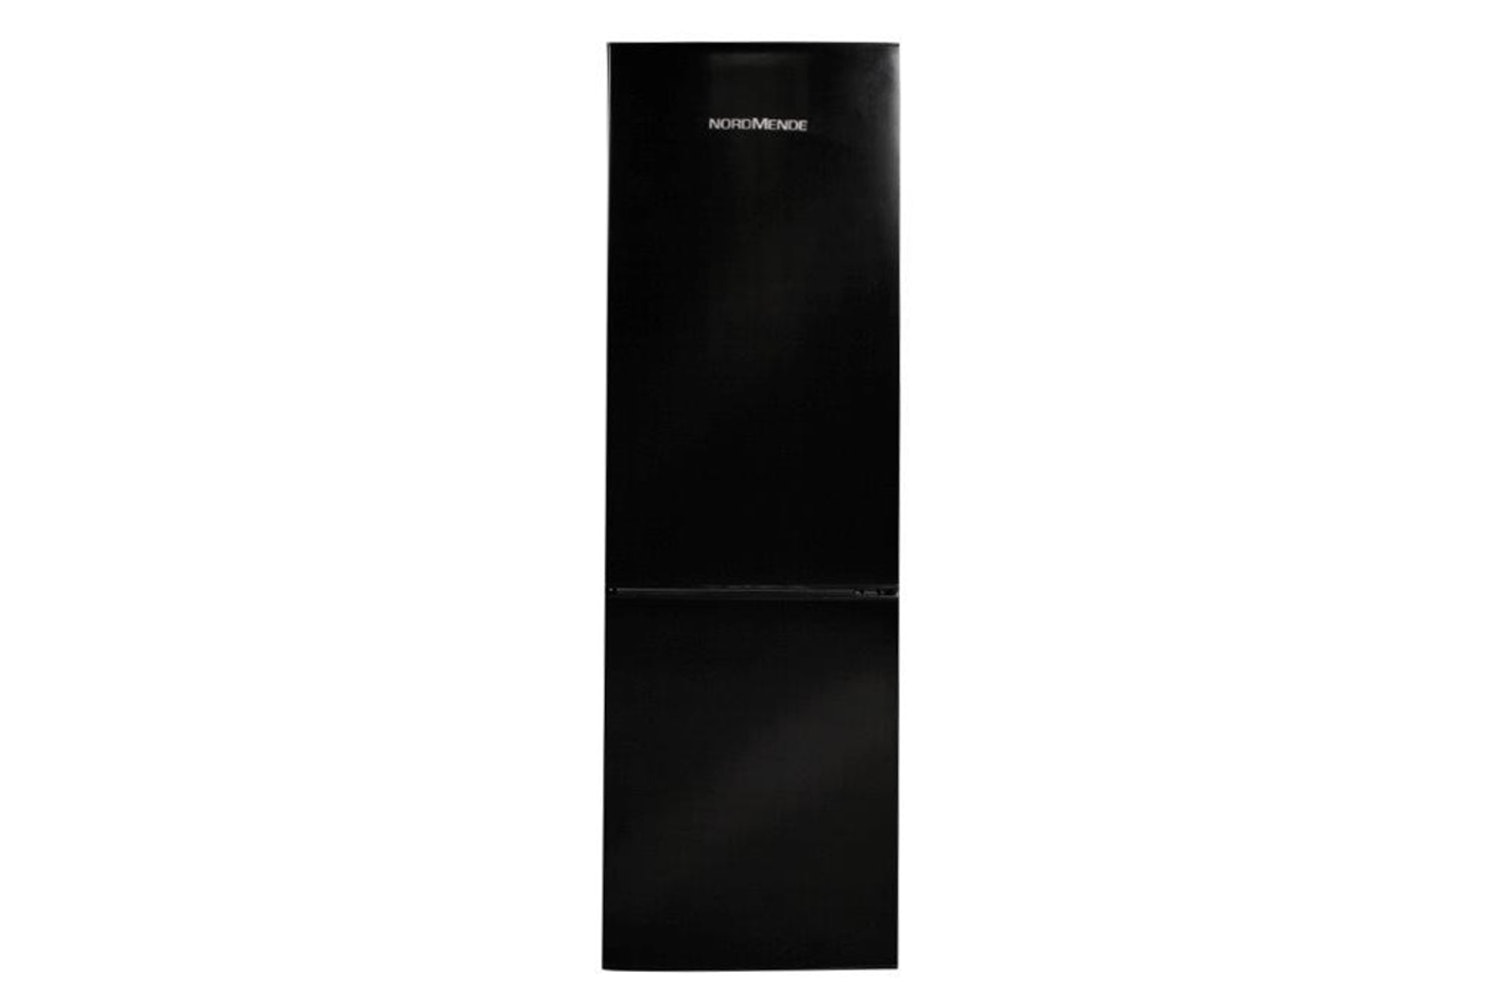 Nordmende Freestanding Fridge Freezer Black | RFF6040BLA+